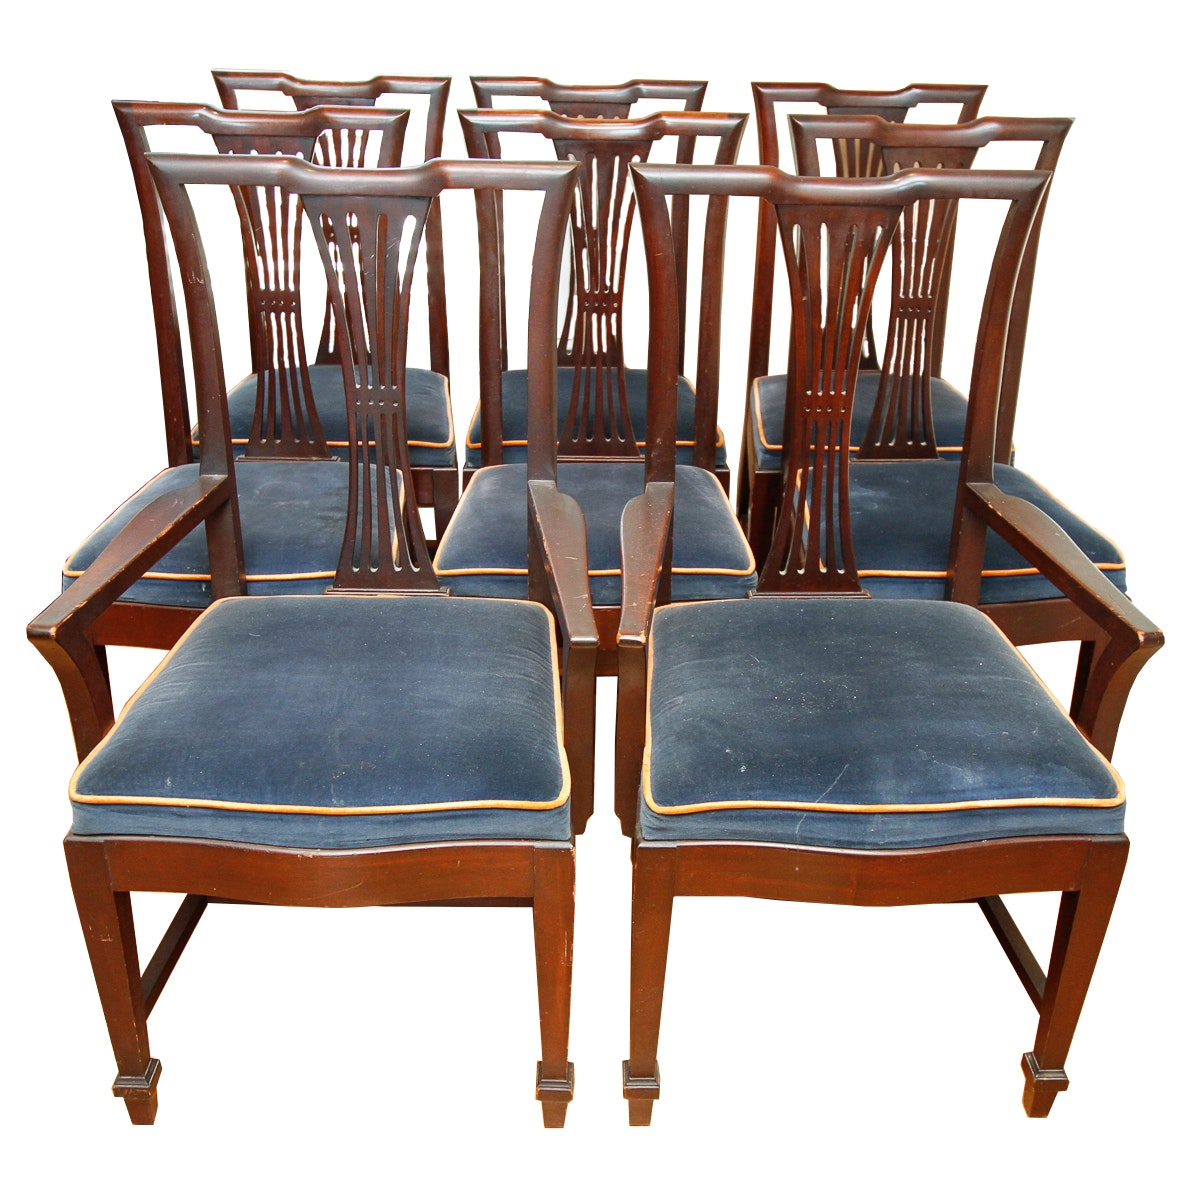 Vintage Style Dining Chairs: Vintage Federal Style Dining Chairs : EBTH